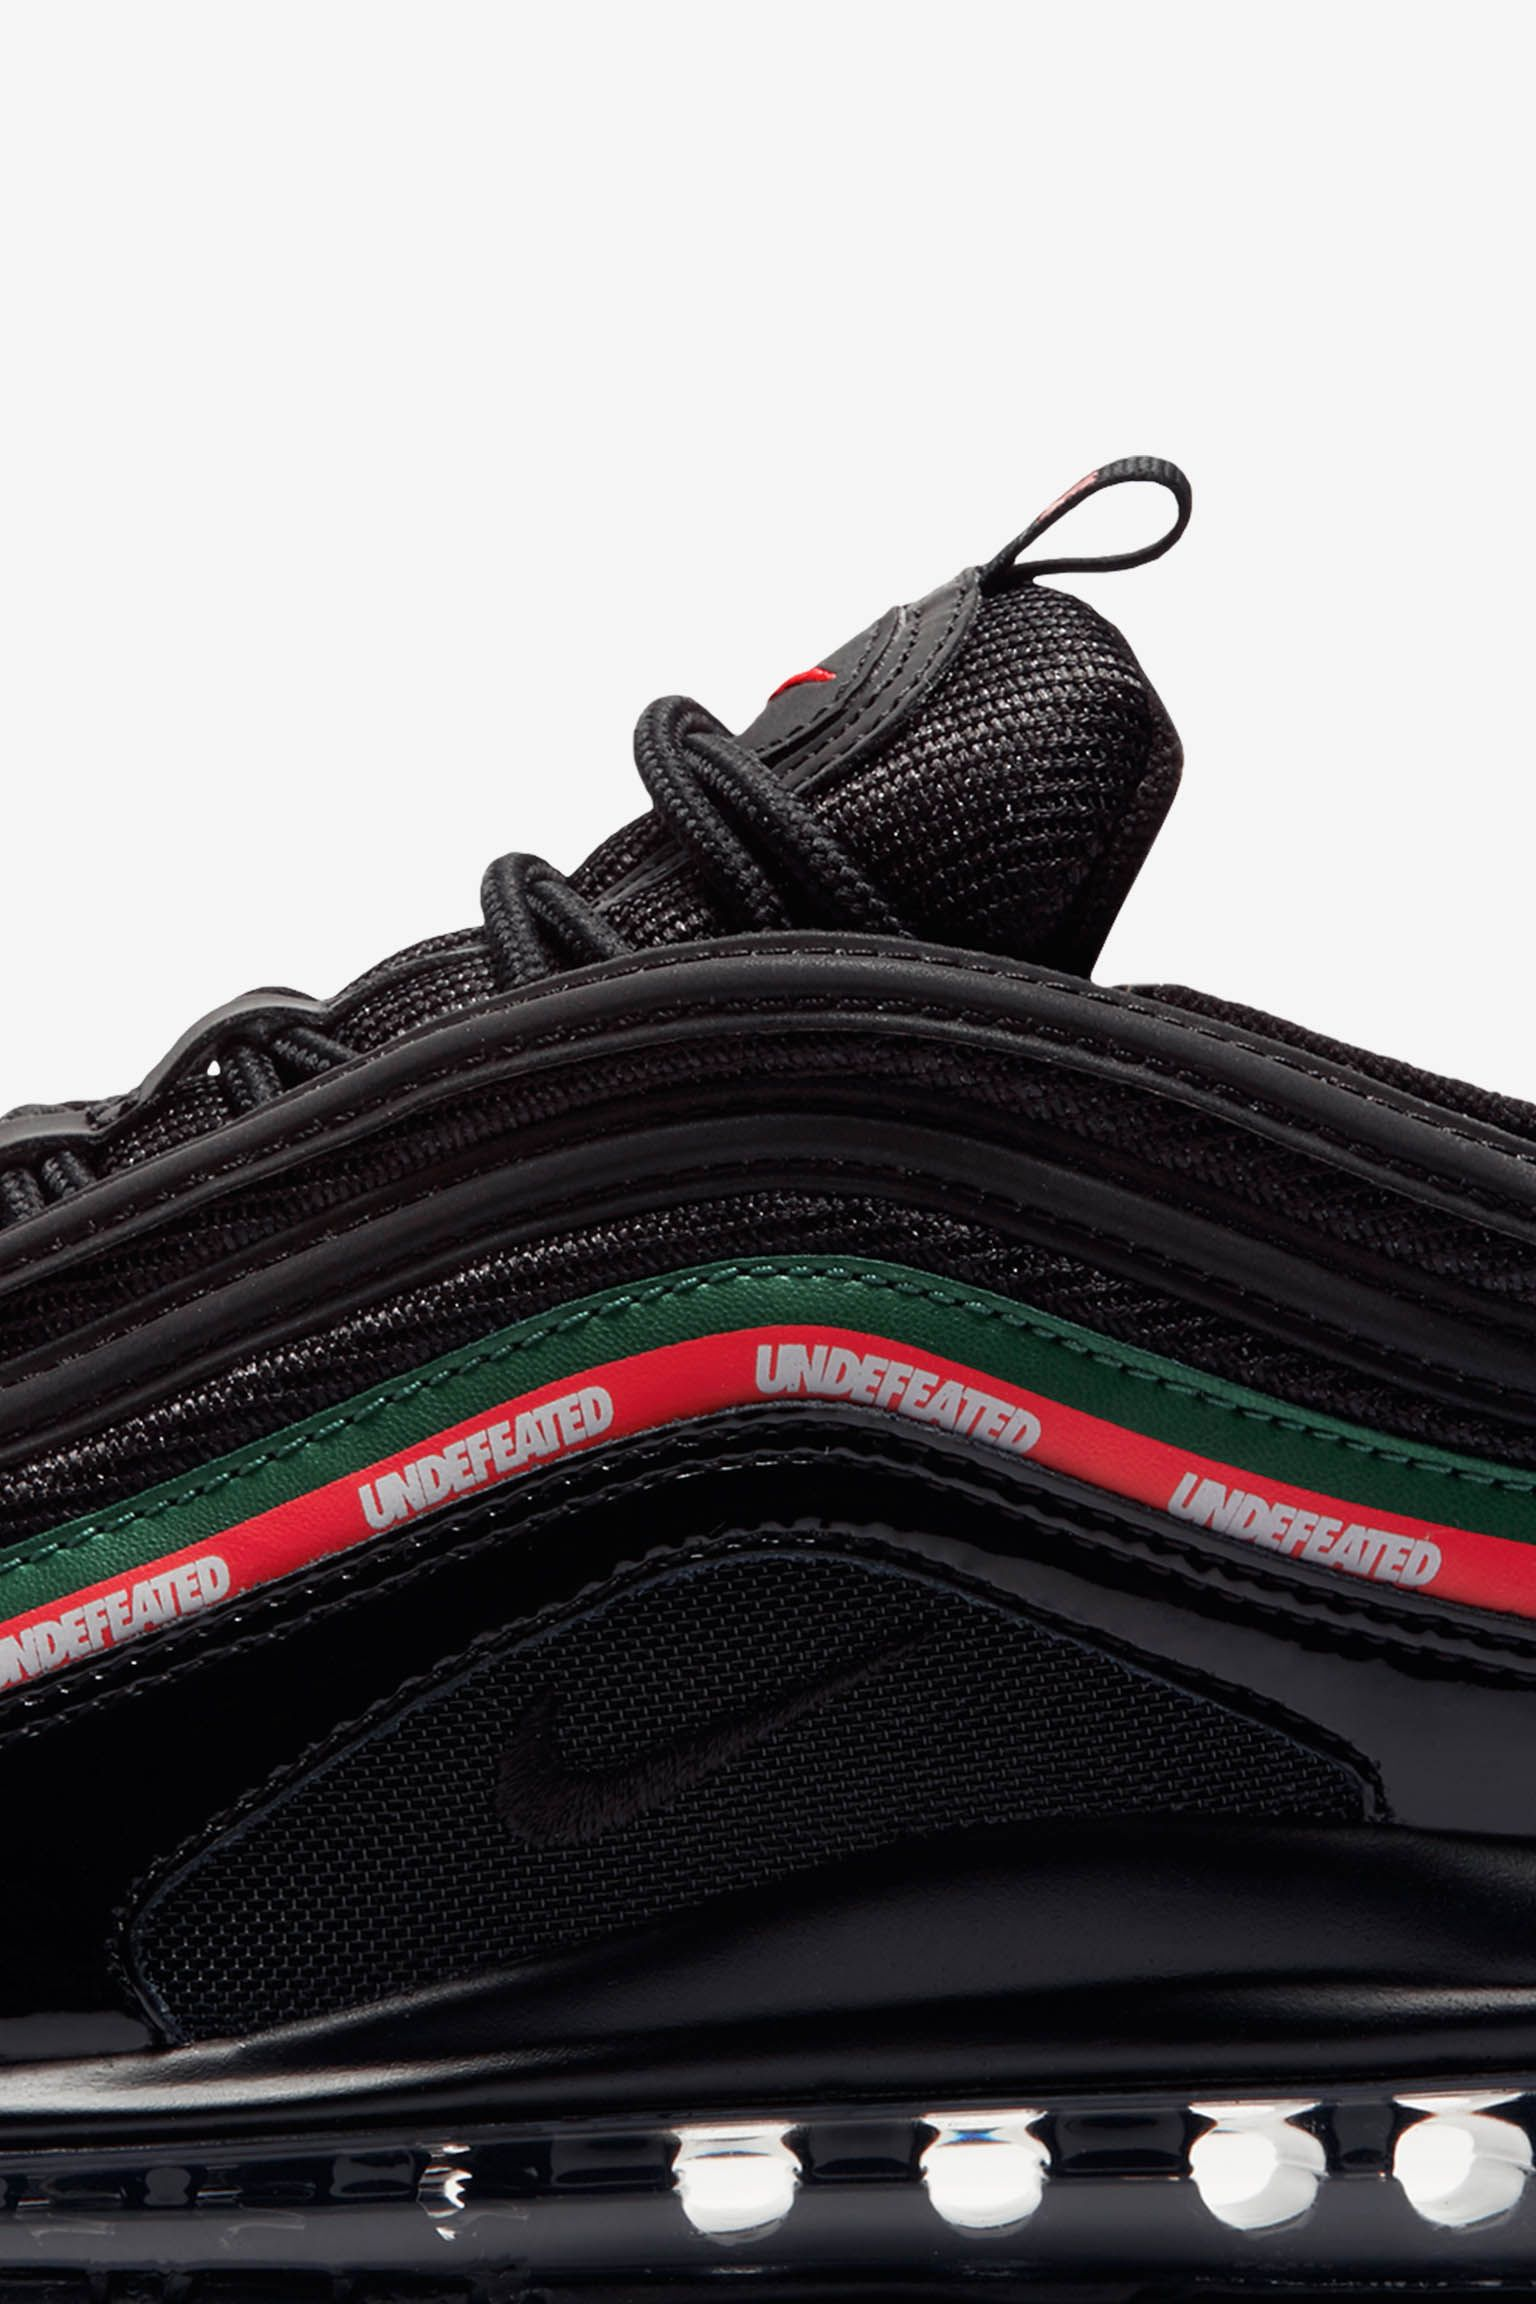 6b8969c0c9 97 Nike Gb Nike Max Release Launch Date Air Undefeated vqwYw8Ea